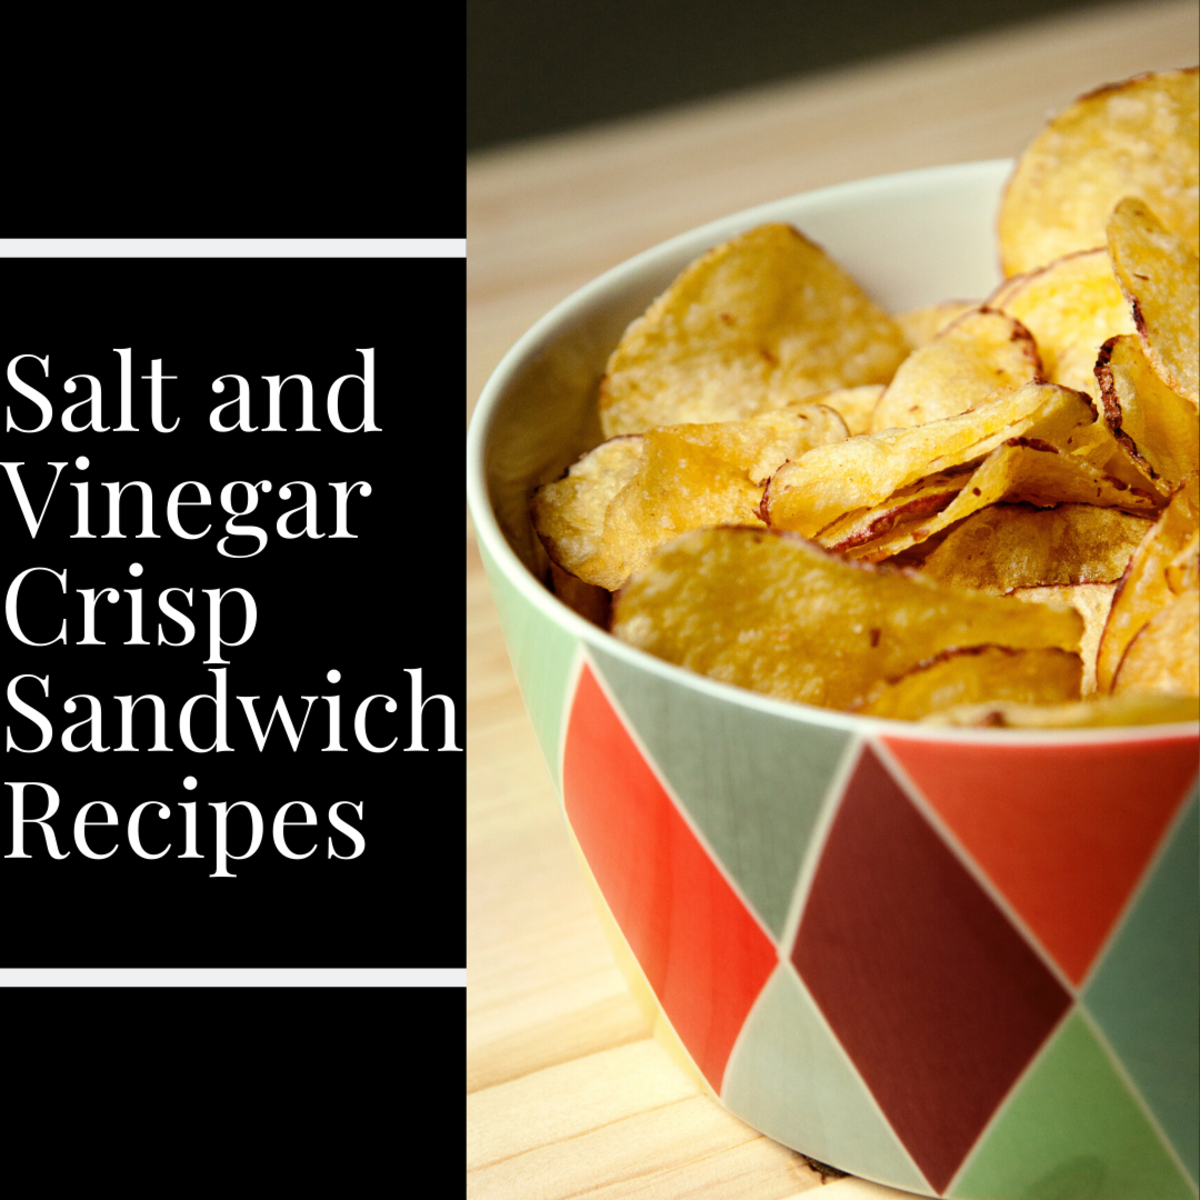 10 Salt and Vinegar Crisp Sandwich Recipes